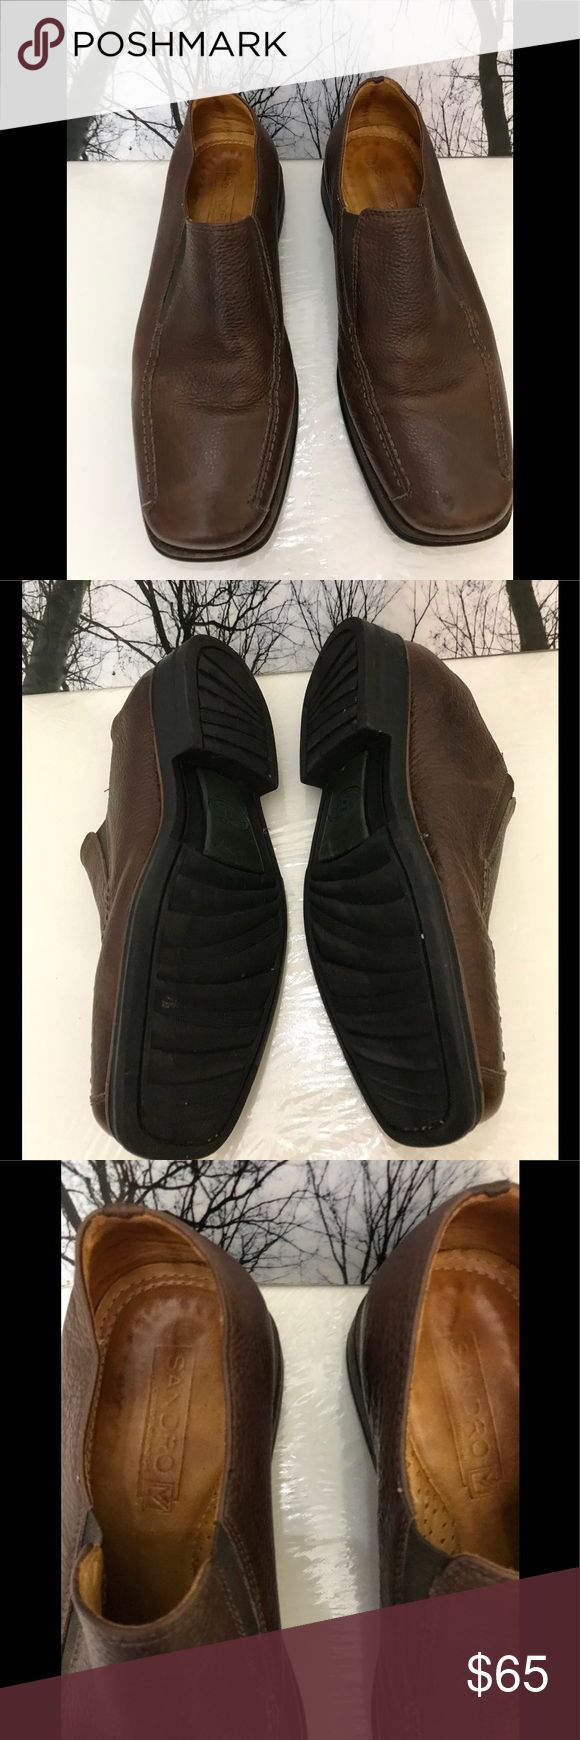 Genuine Leather Men's Shoes Authentic- Genuine Leather Men's Sandro Moscoloni Shoes In preowned Condition, Gently Used. Color:Brown Size:9.5 USA Sandro Moscoloni Shoes Loafers & Slip-Ons